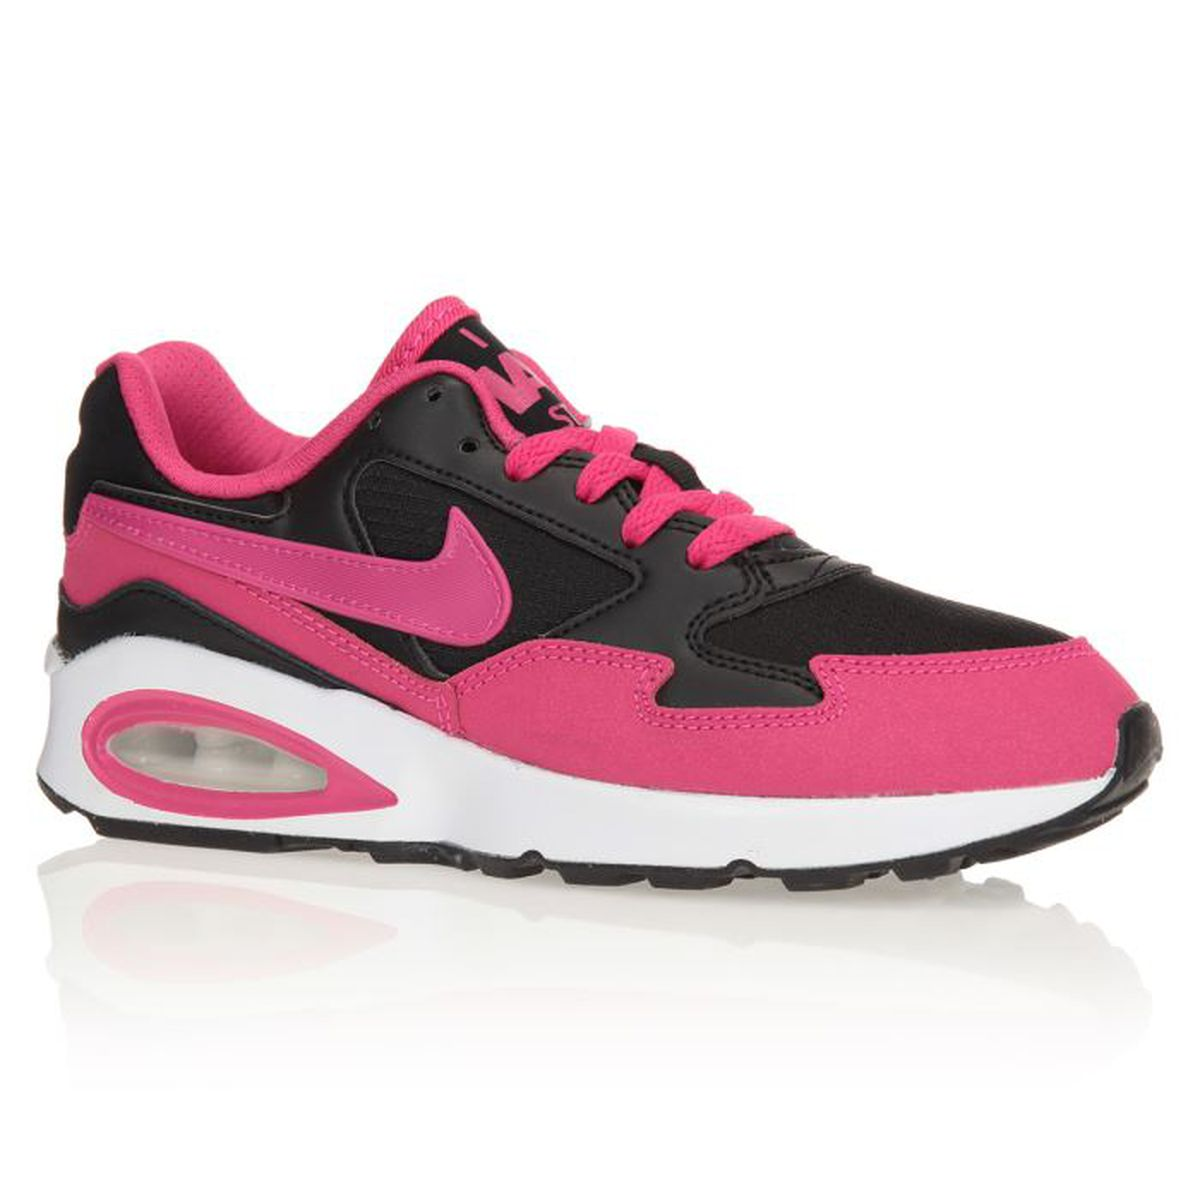 nike baskets air max st chaussures enfant fille rose et noir achat vente basket cdiscount. Black Bedroom Furniture Sets. Home Design Ideas